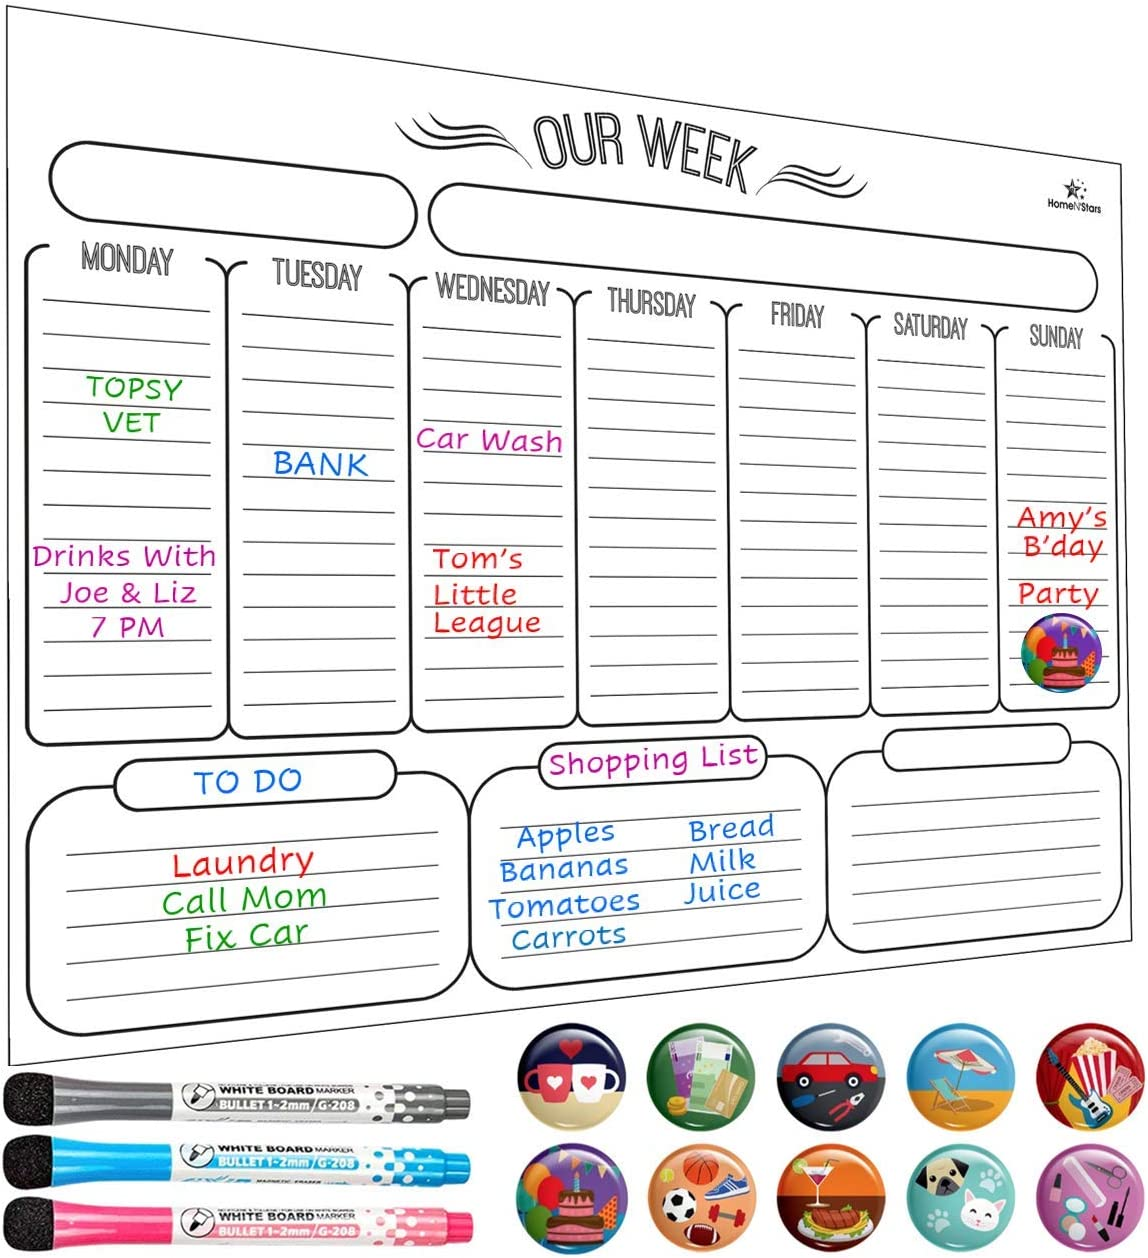 Dry Erase Weekly Calendar - Weekly Dry Erase Board - Magnetic Weekly Planner - Stain Resistant Nano Technology - Bonus 3 Fine Tip Magnetic Markers and Eraser, 10 Highlight Icons, 16 inch x 12 inch